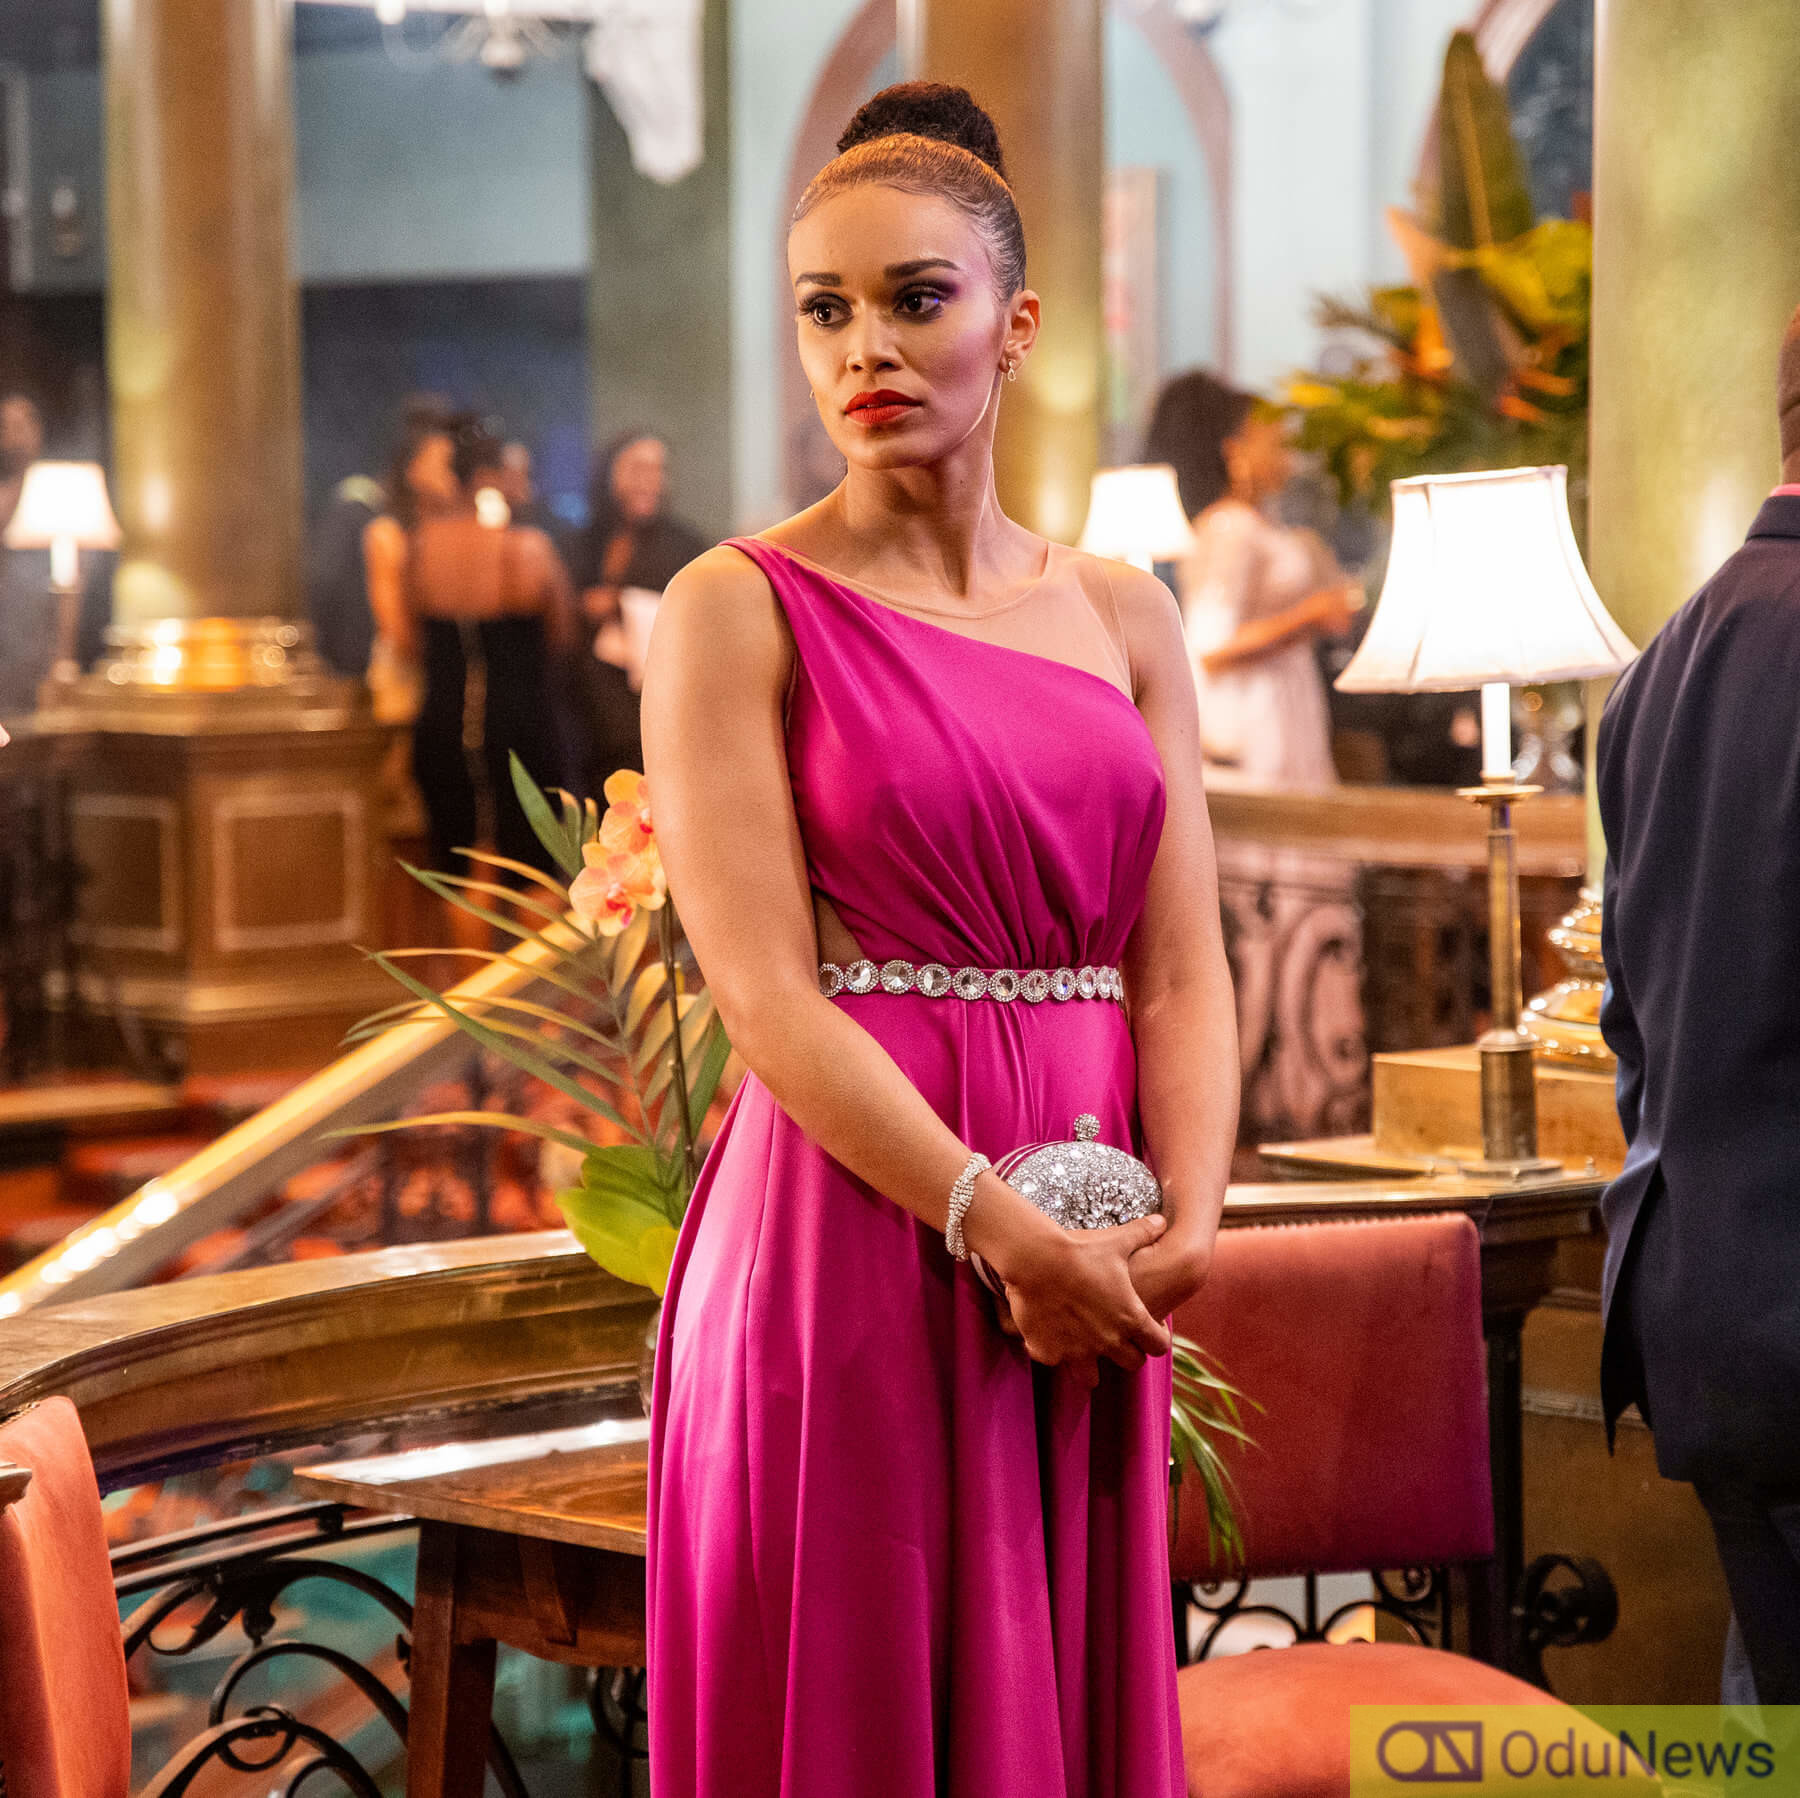 Actress Pearl Thusi is fun to watch but her attempts at showing emotional range fall flat